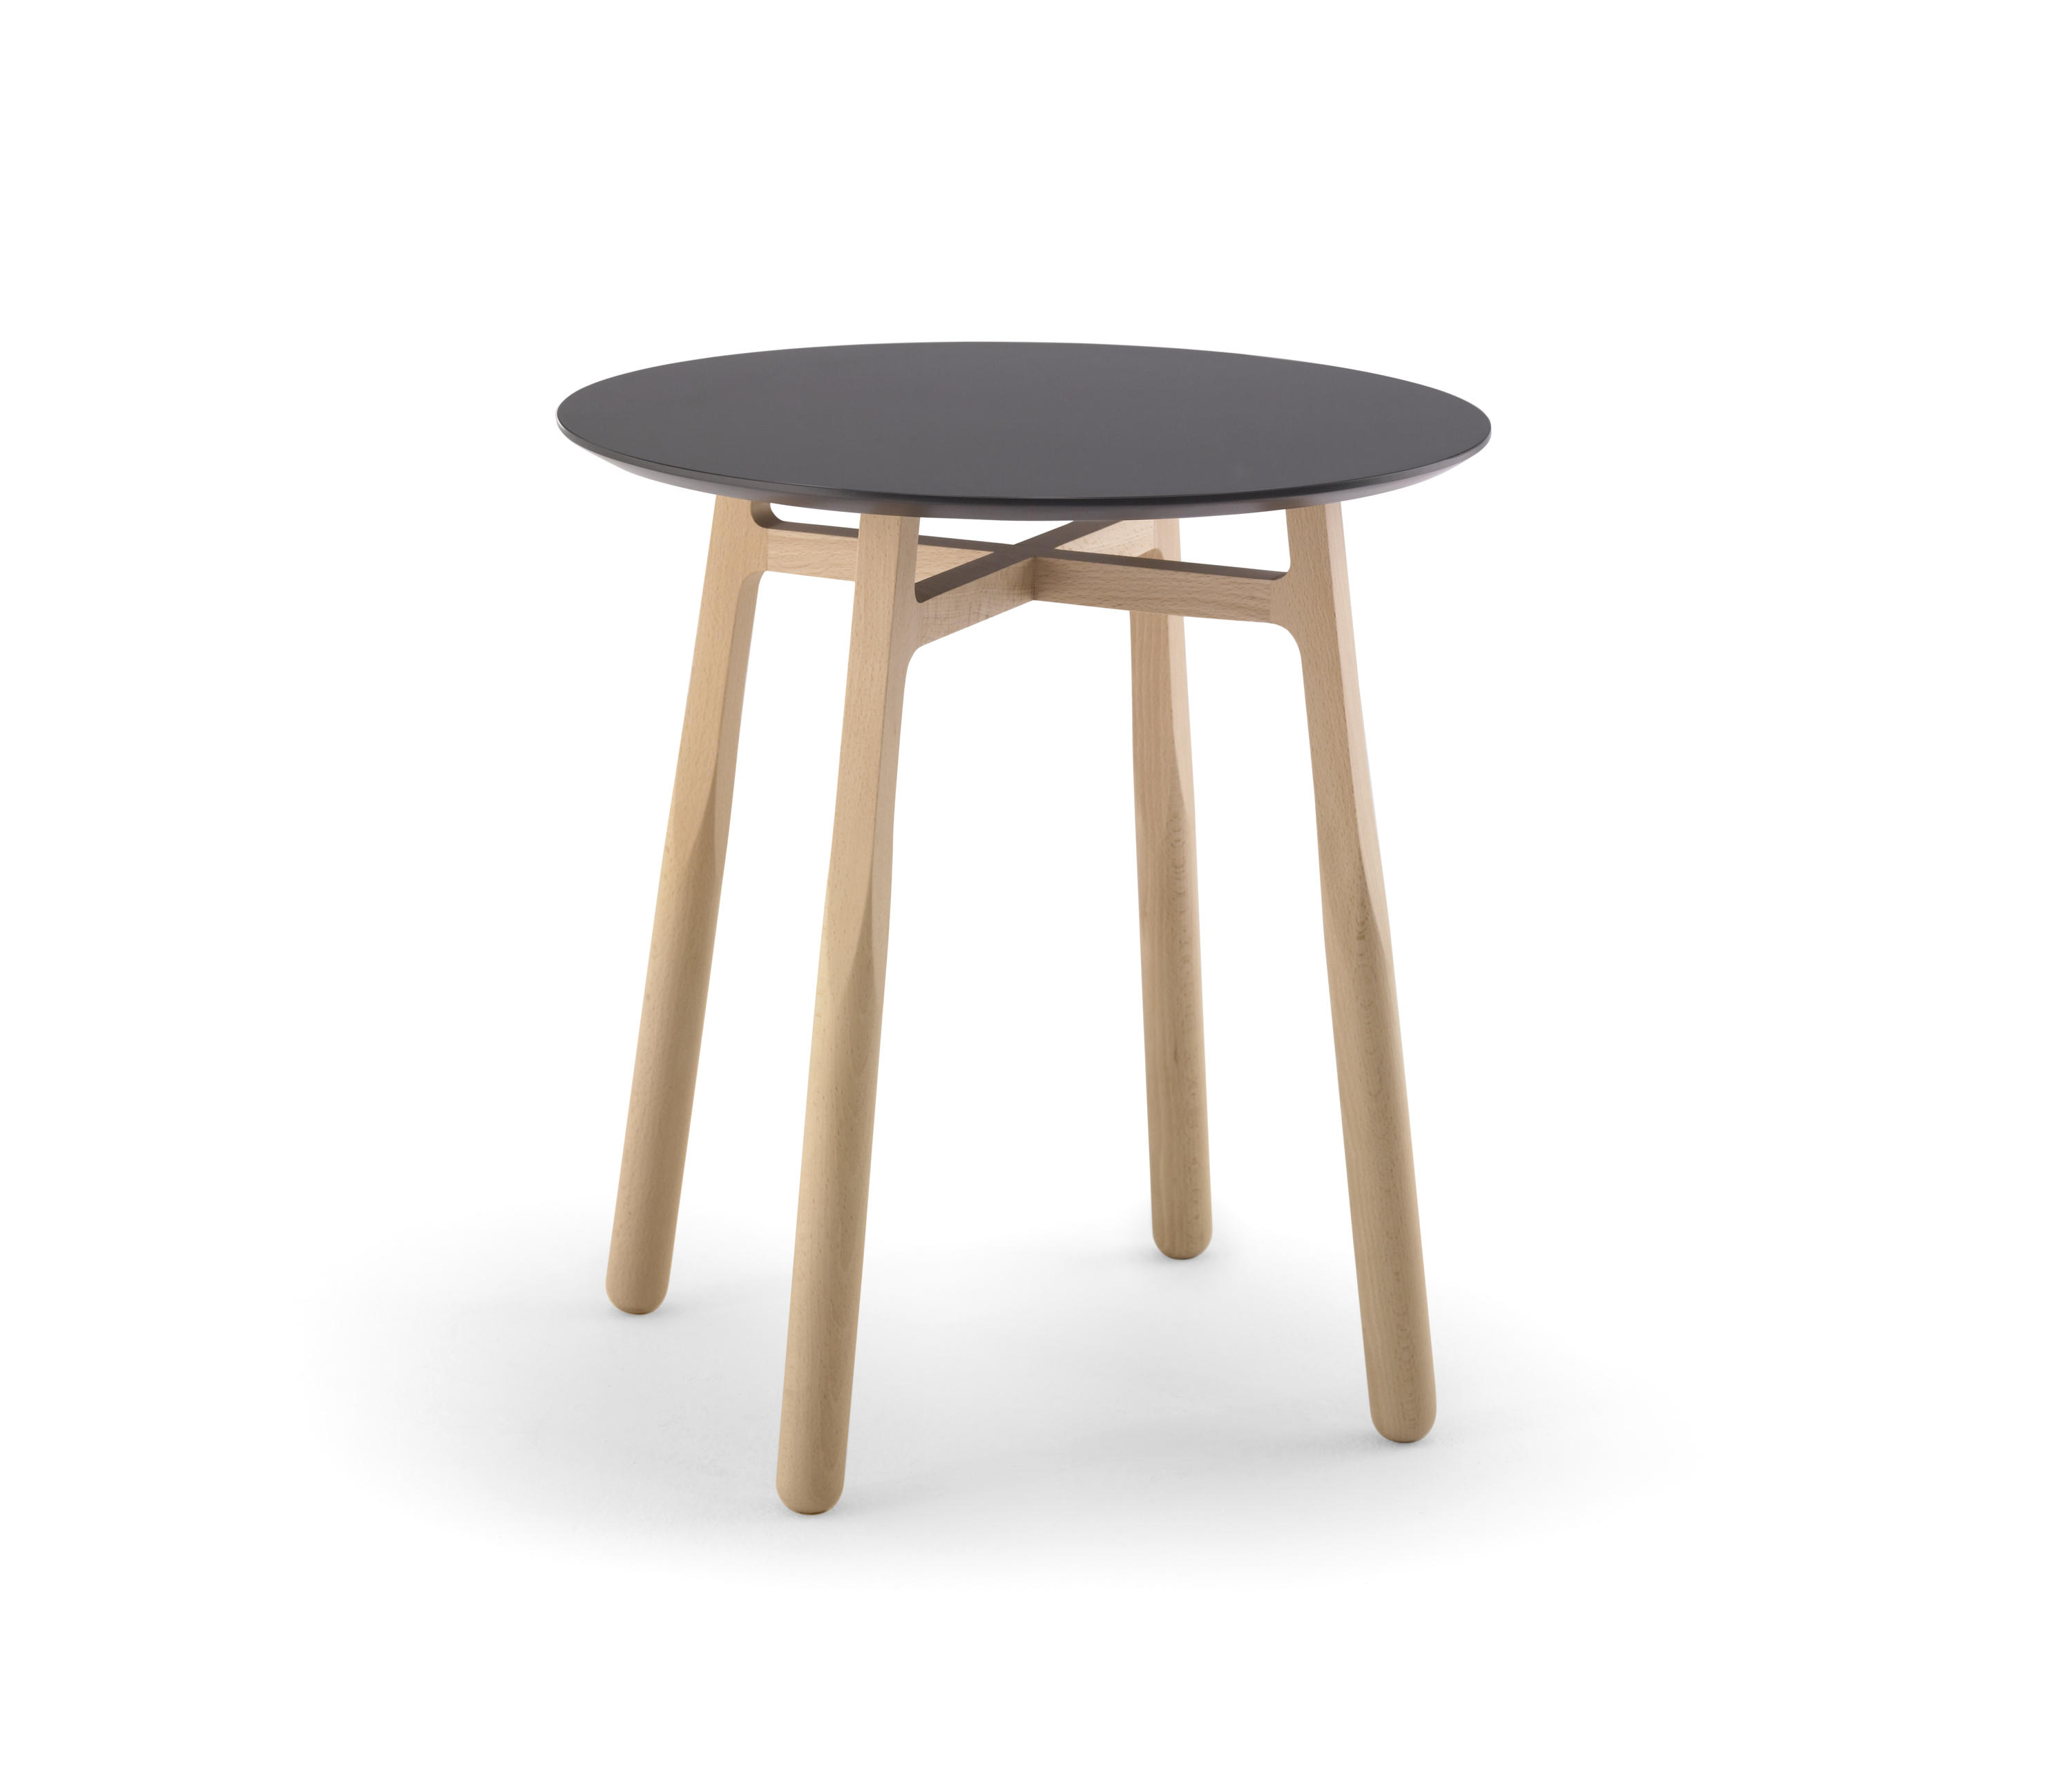 Tab side tables from kendo mobiliario architonic - Kendo mobiliario ...